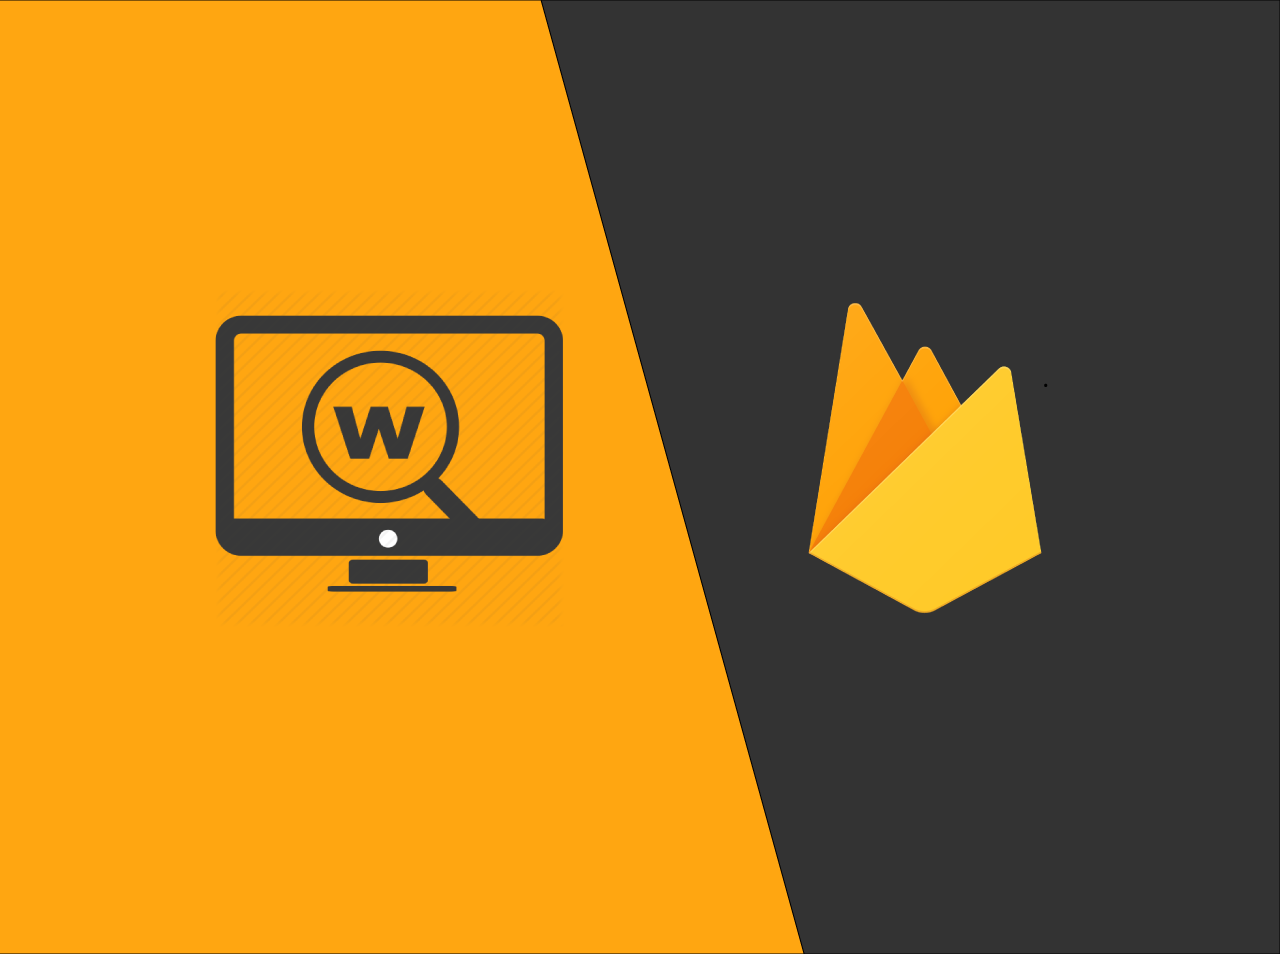 How to host static website on Google firebase for free